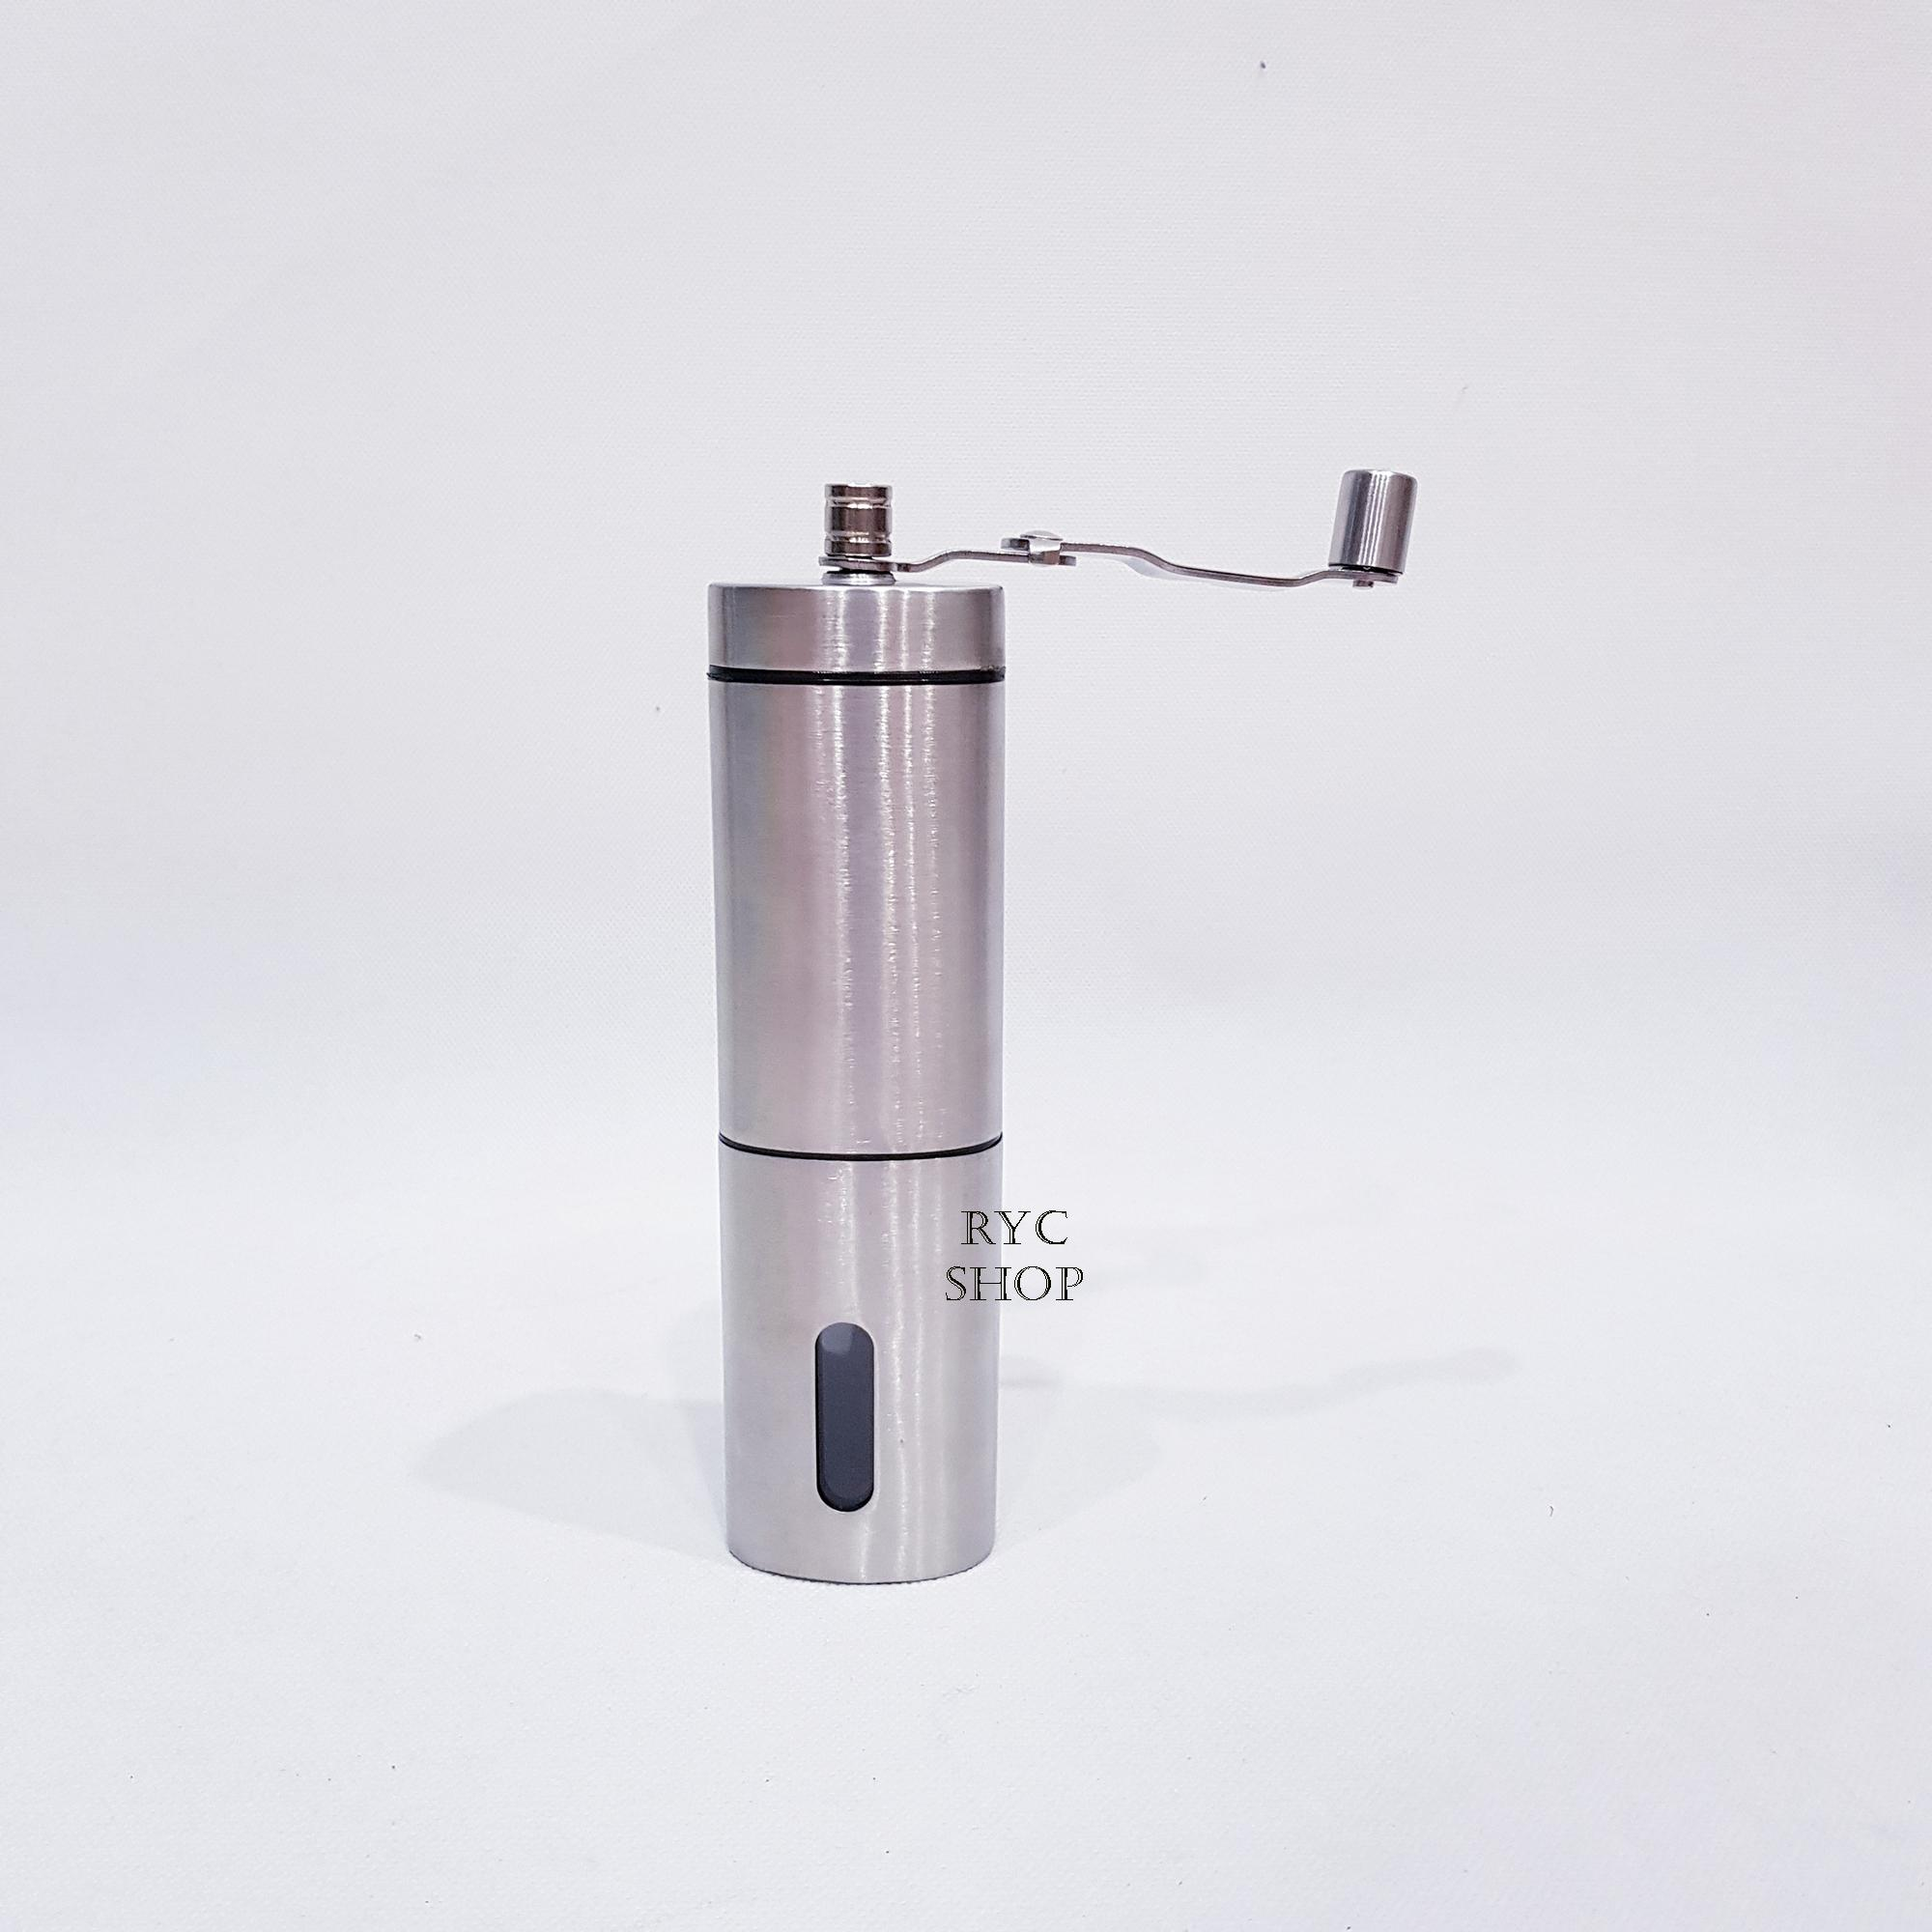 Coffee Grinder Stainless Steel / Coffee Grinder Manual / alat Penggiling Kopi Stainless Steel Termurah